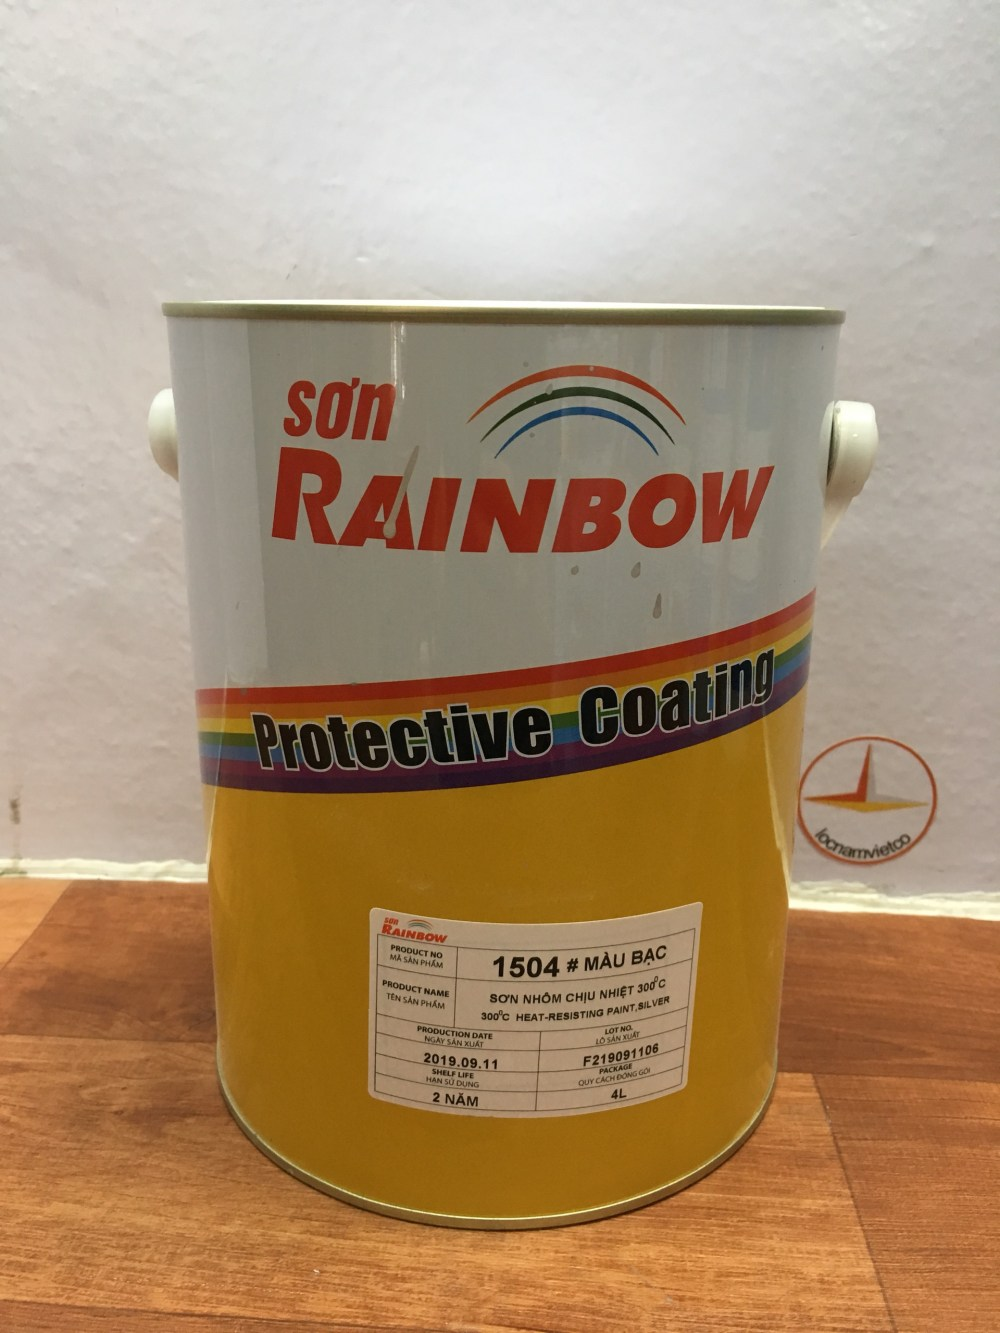 SON NHOM CHIU NHIET 300 DO C RAINBOW 1504 BAC -4L (1)